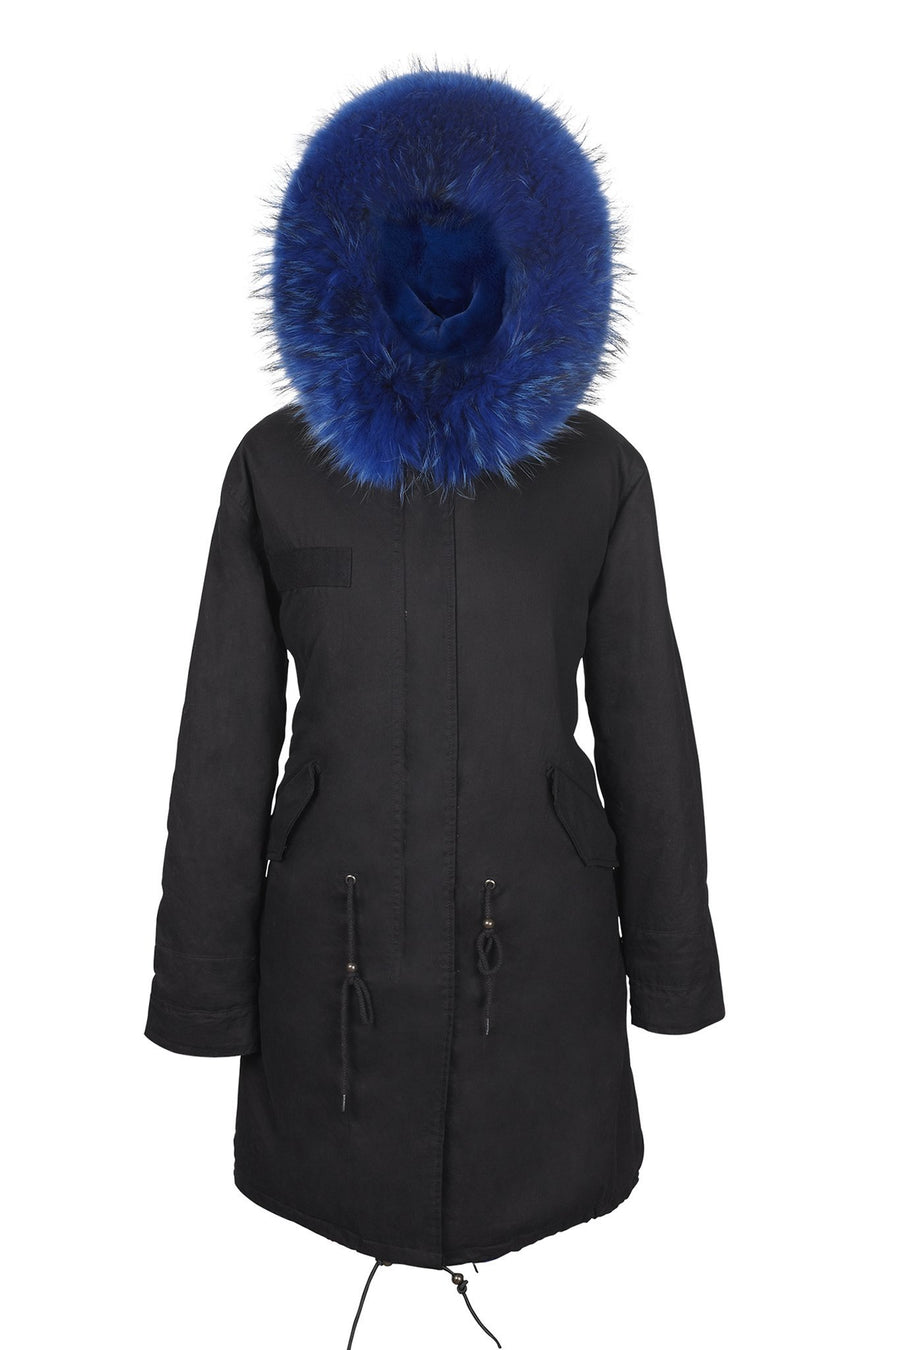 Wild Blue Black Darling Parka